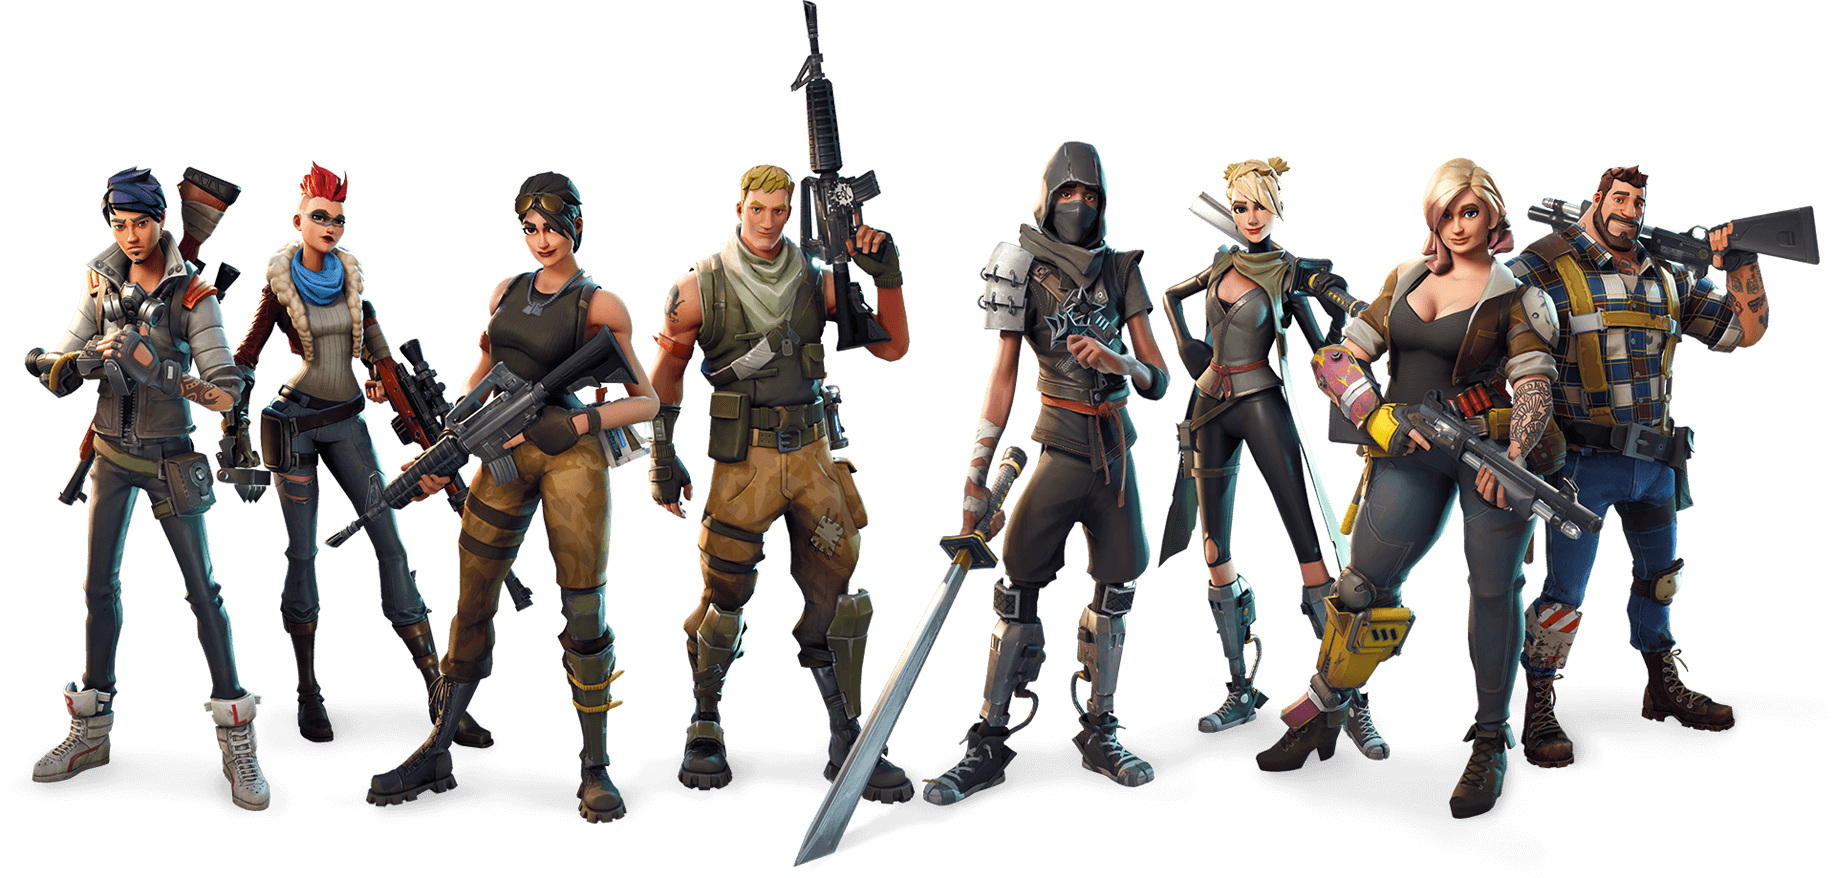 Download Fortnite Class Characters Png Image For Free